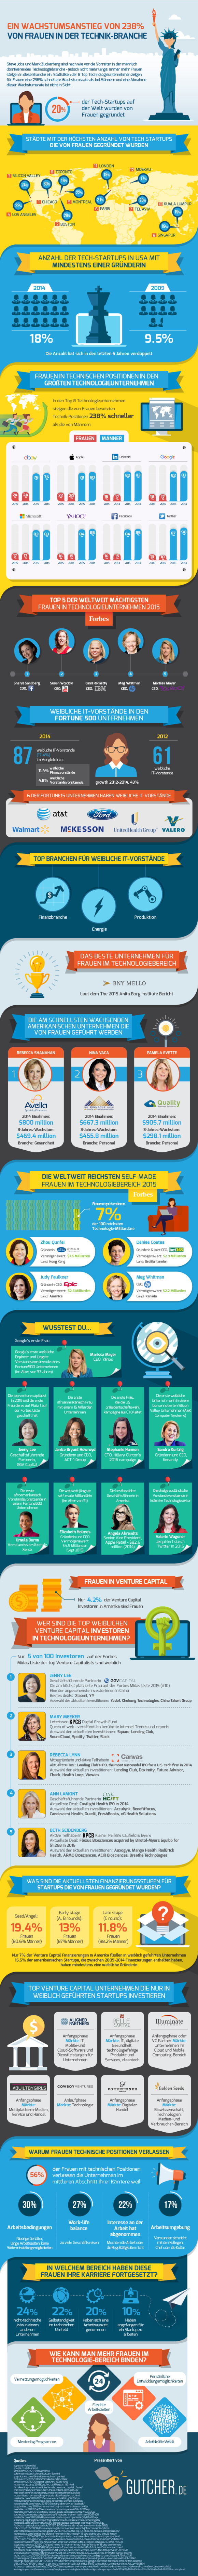 ds-women-in-tech